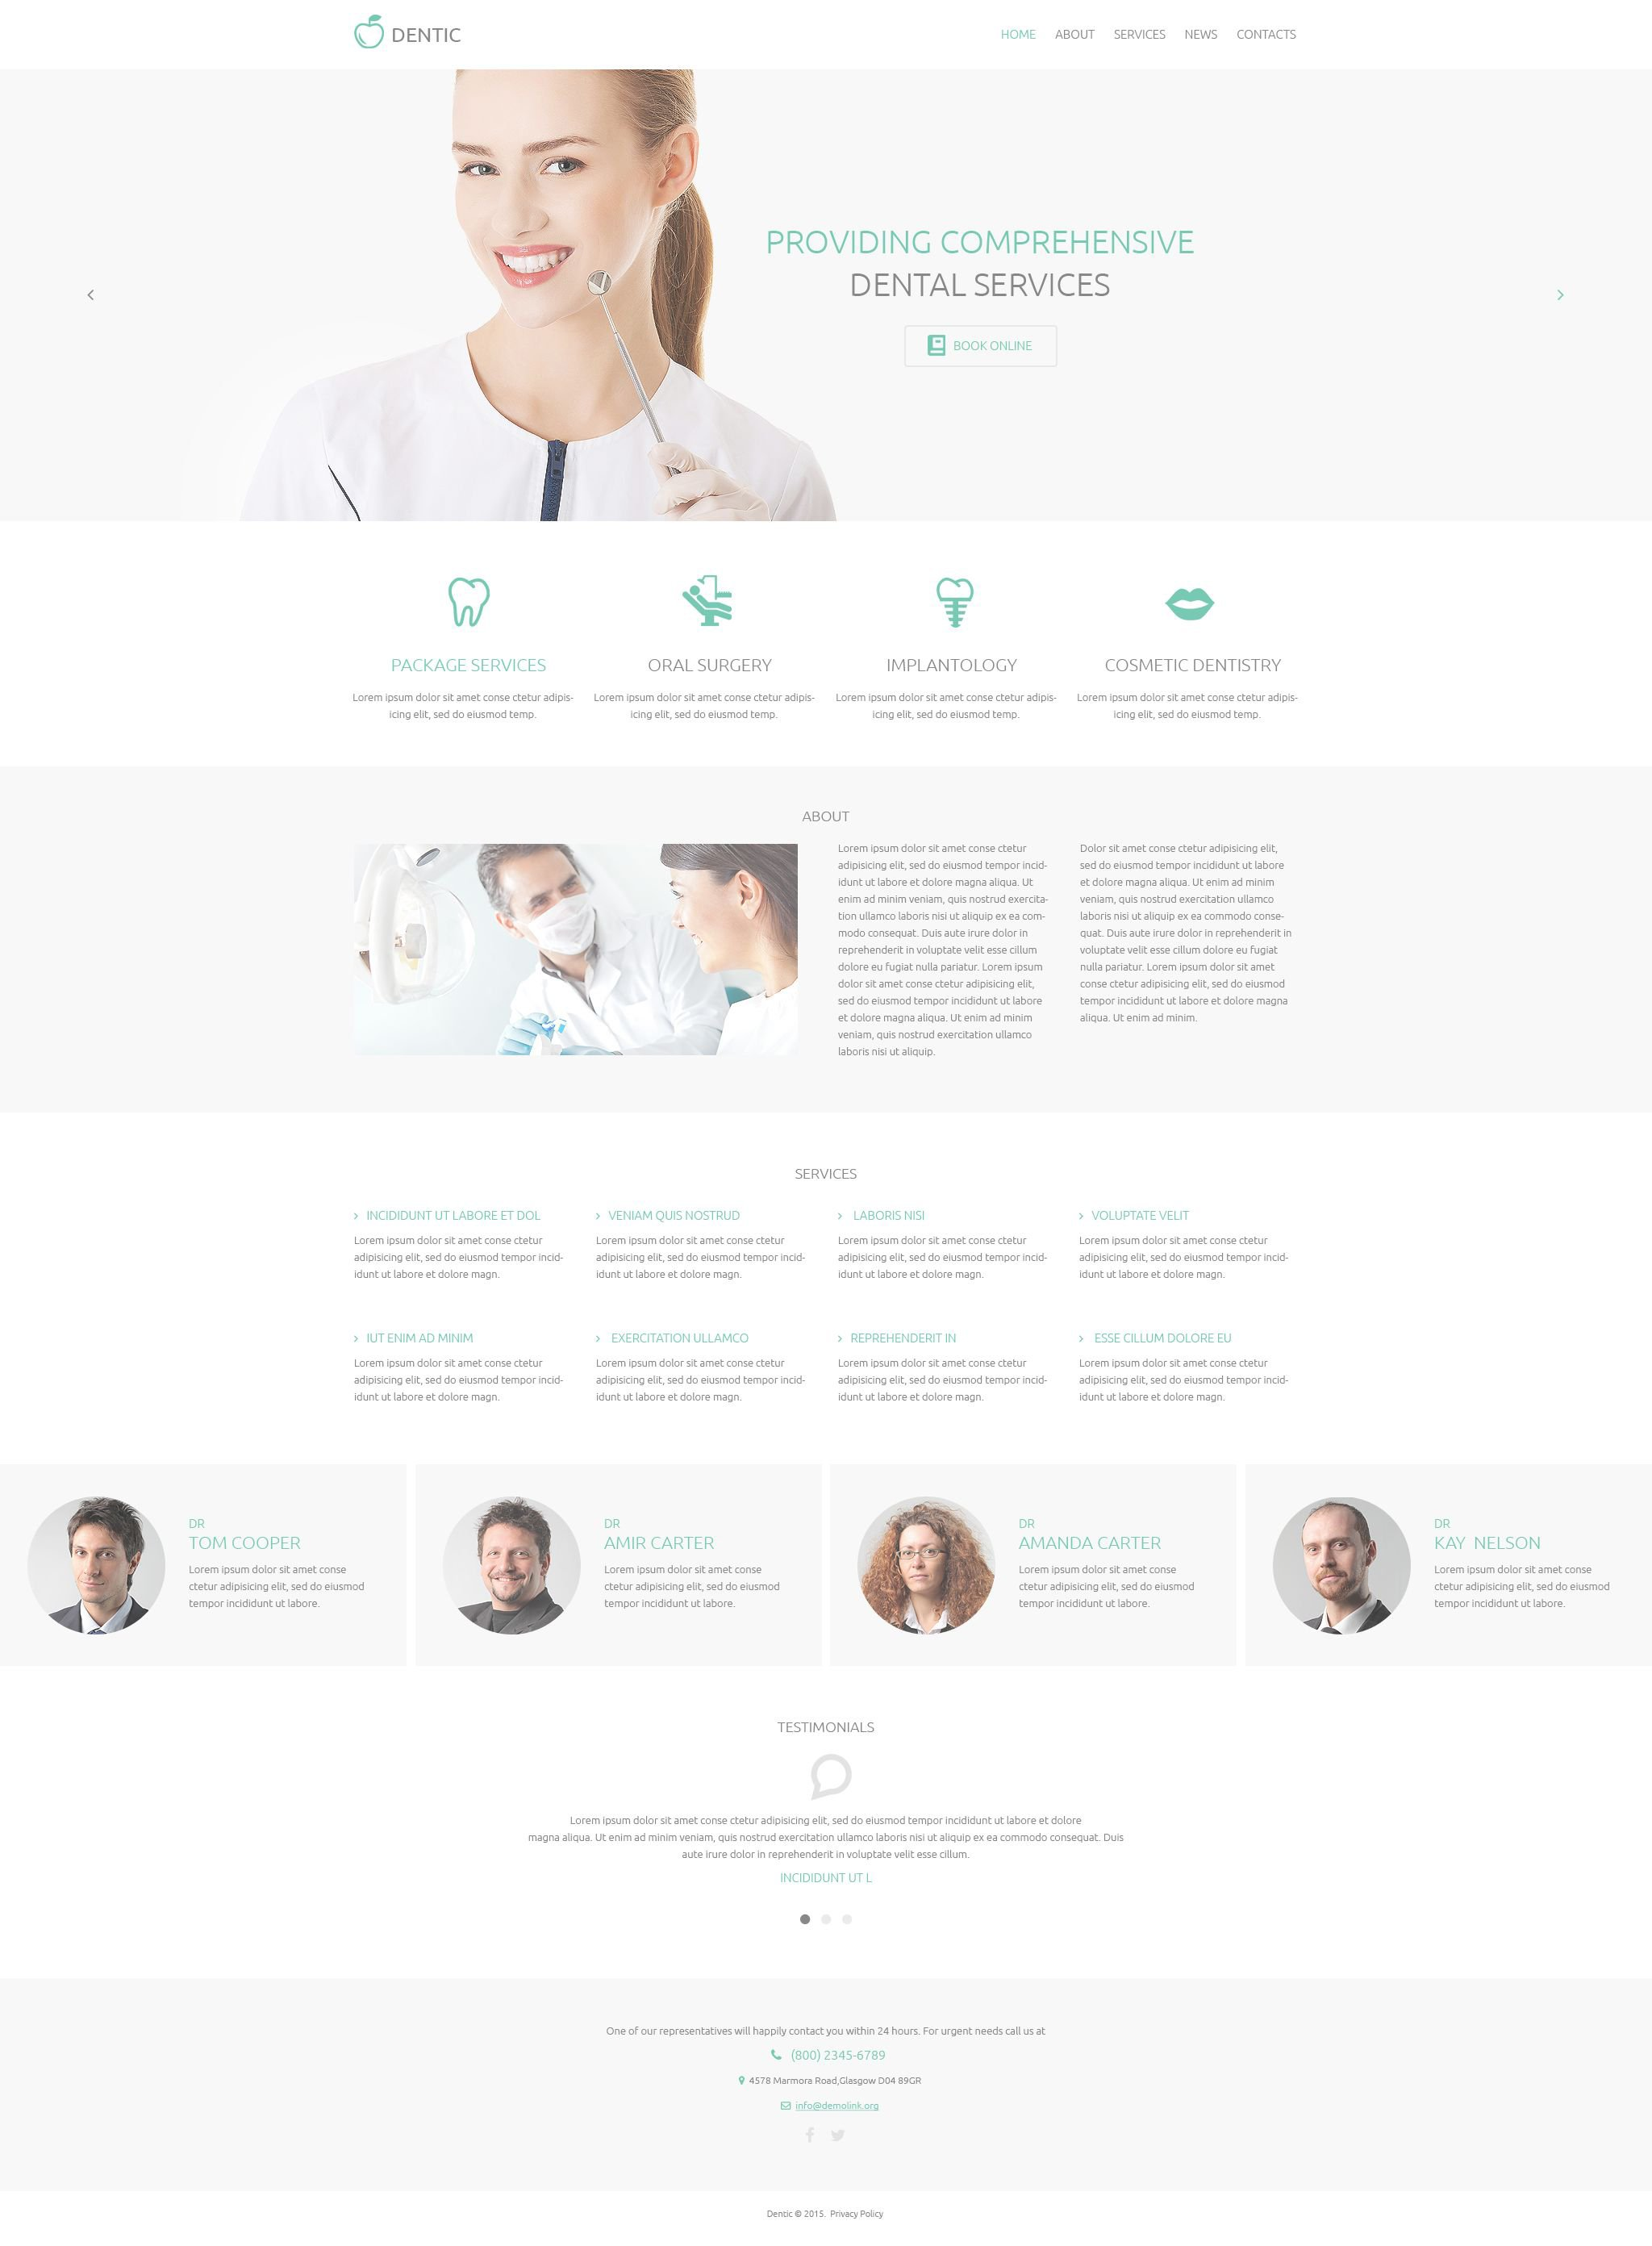 Dentic PSD Template